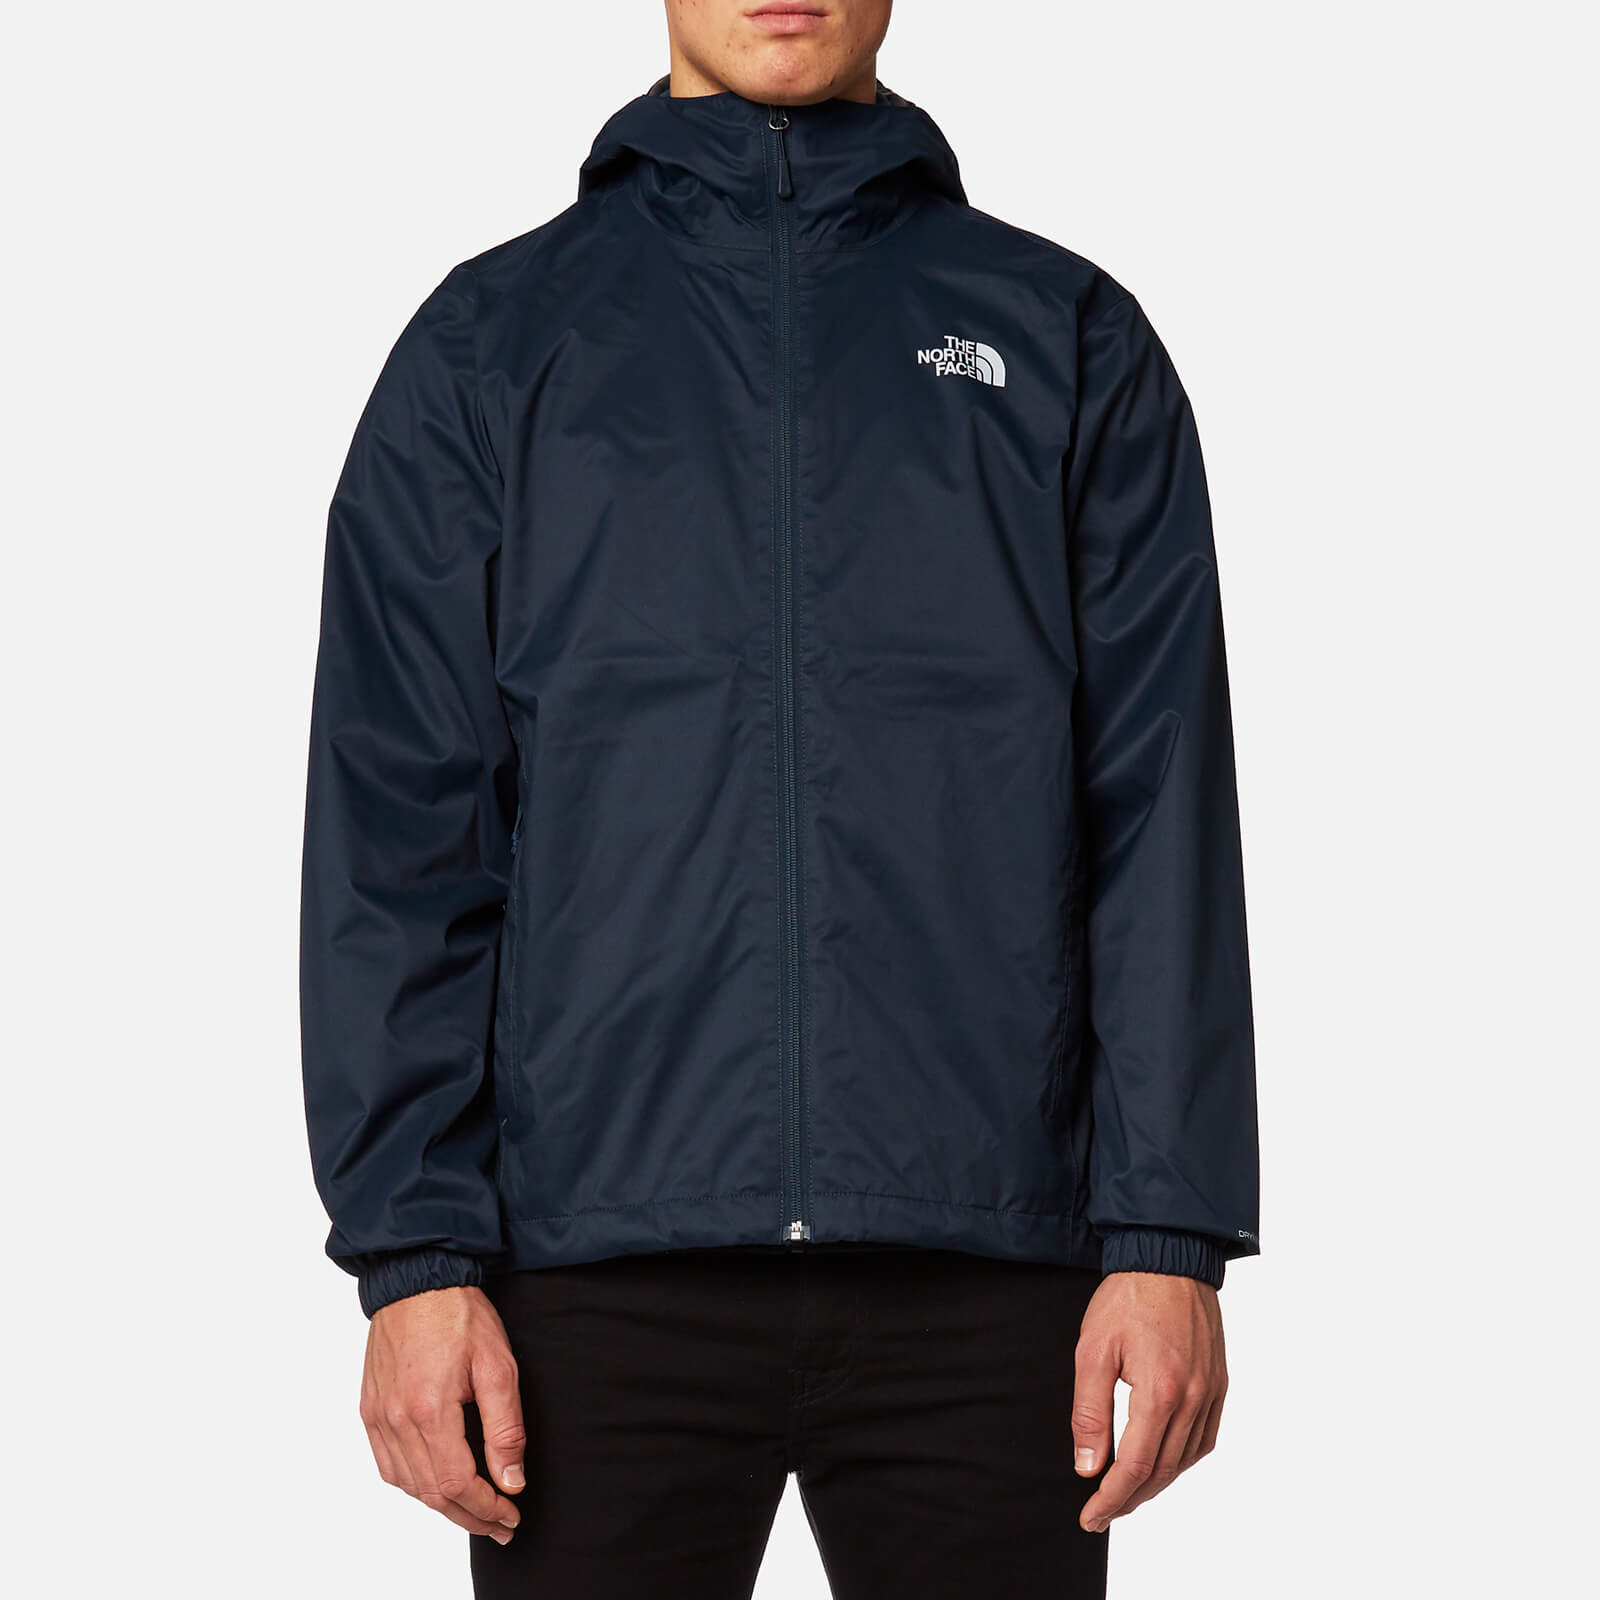 7ba5b0b68 The North Face Men's Quest Jacket - Urban Navy